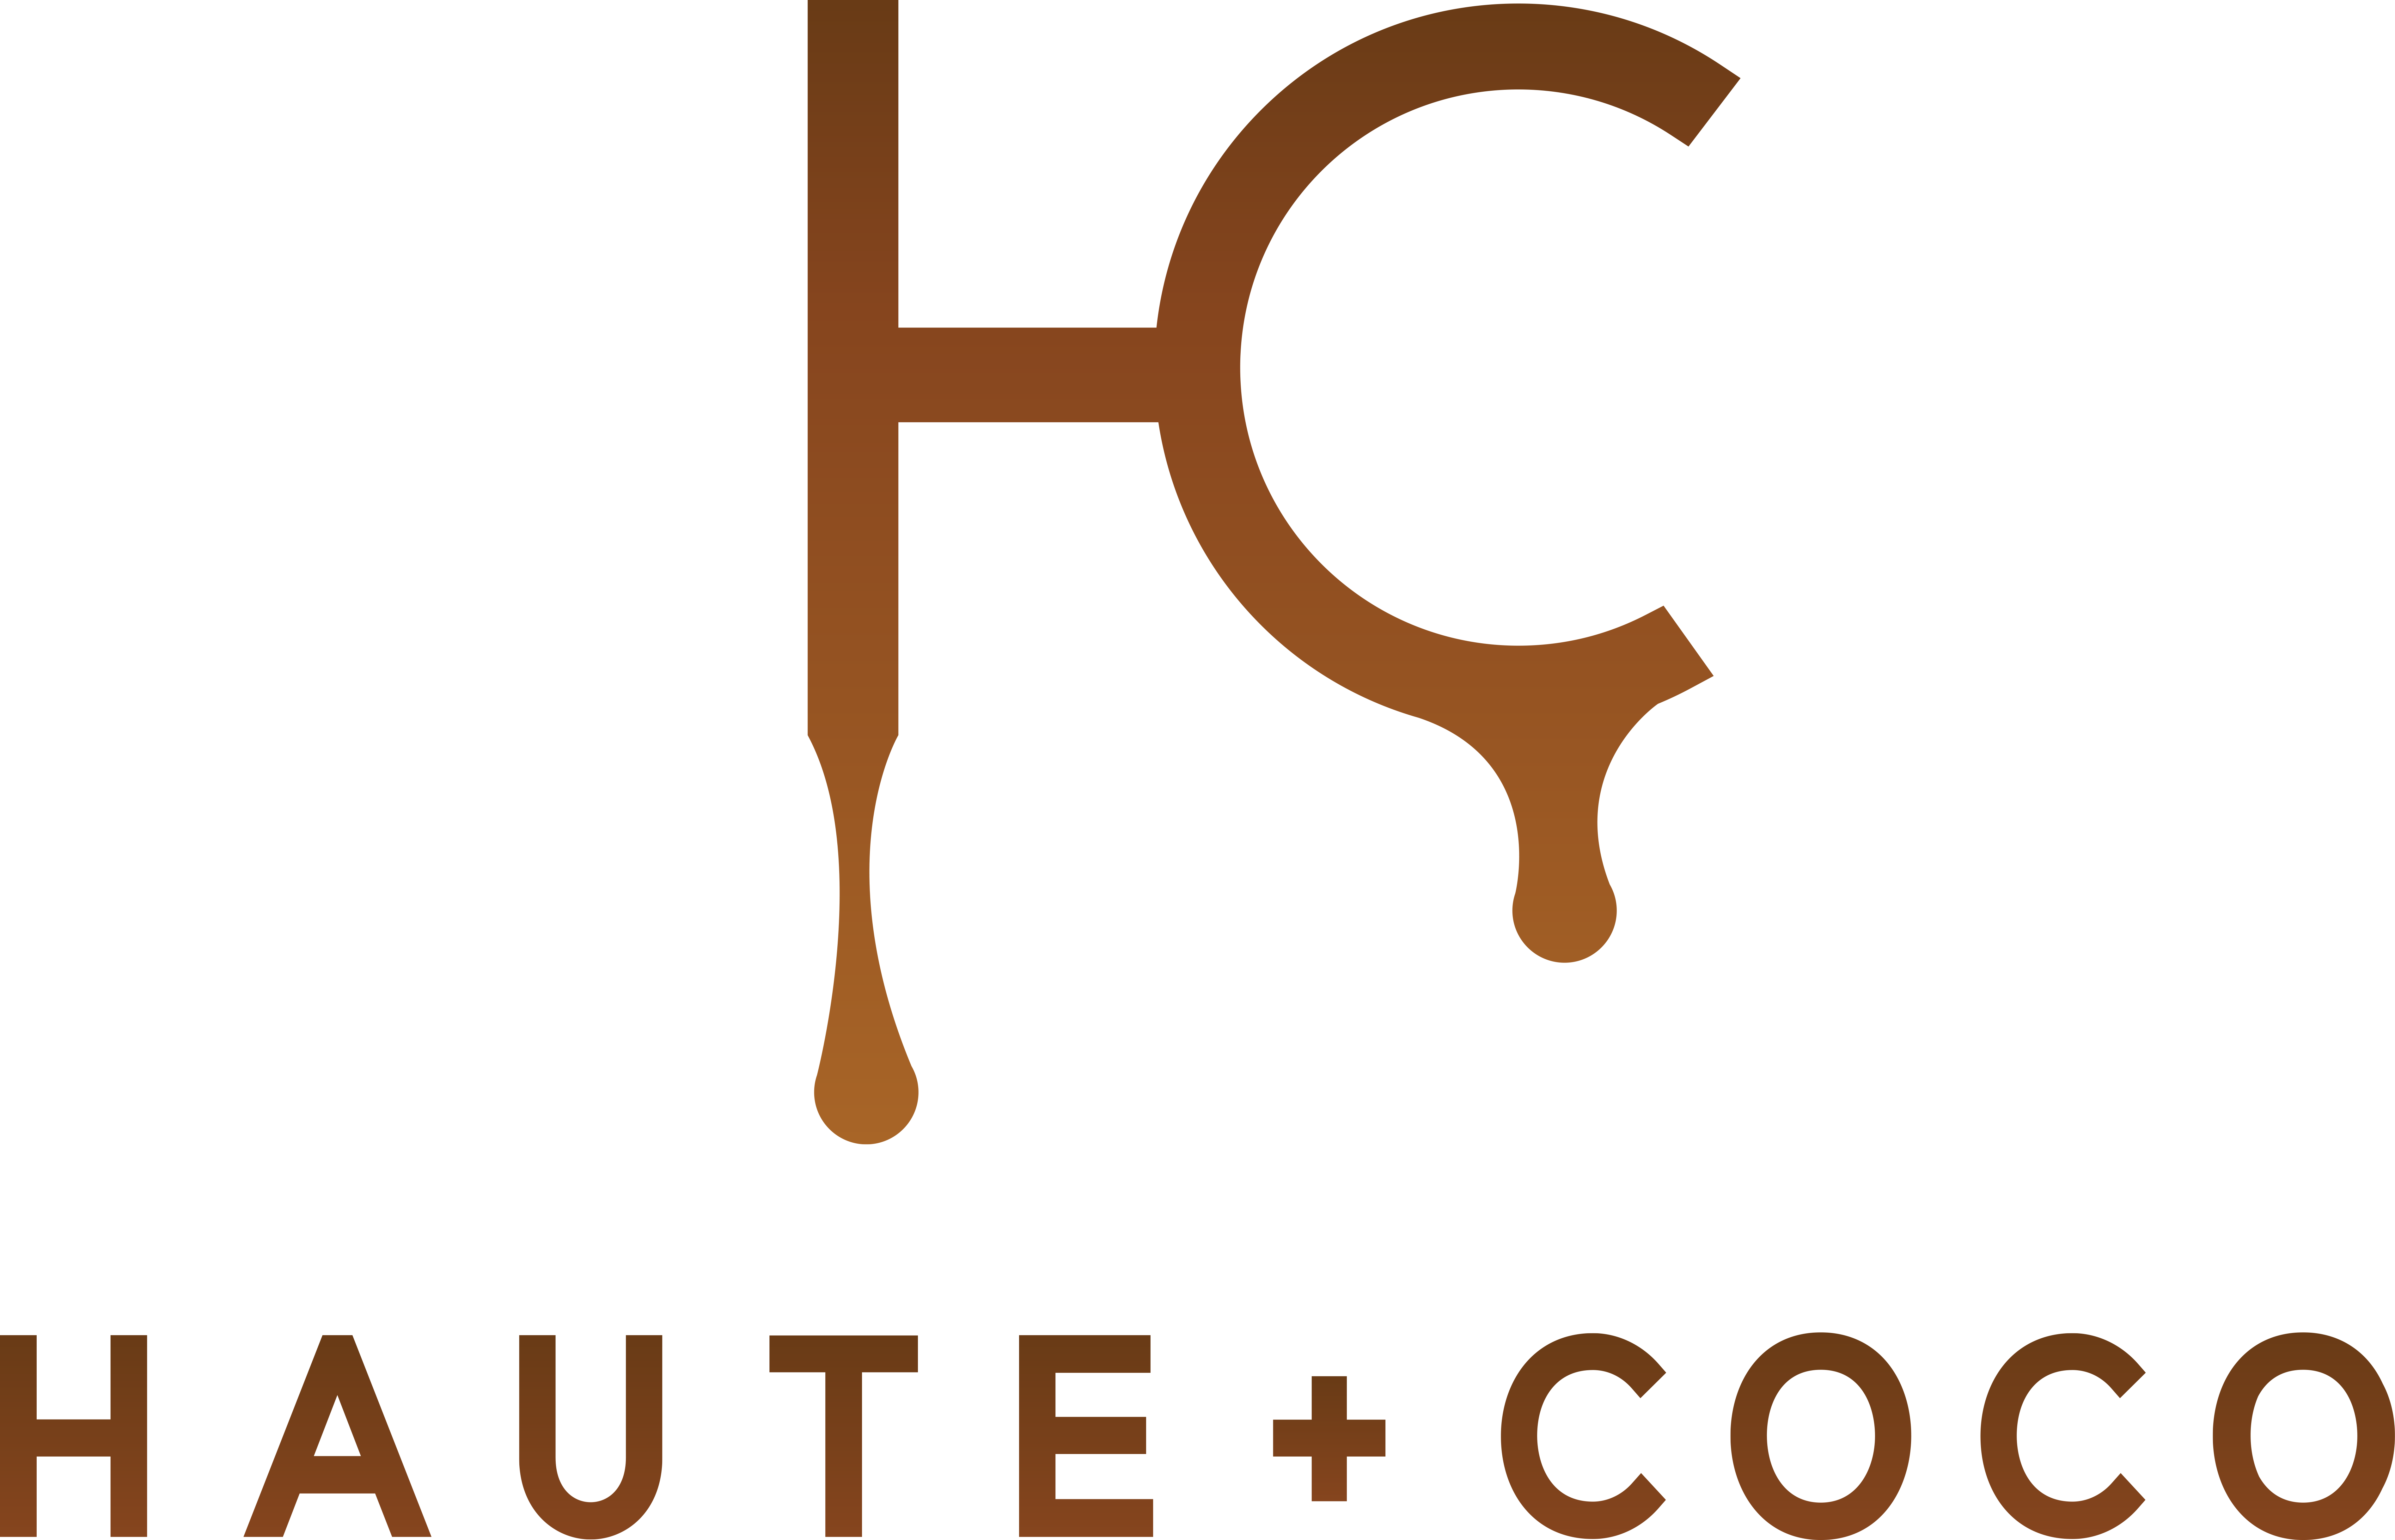 Create a liquid/color fading logo for high-end HAUTE + COCO Airbrush Tanning